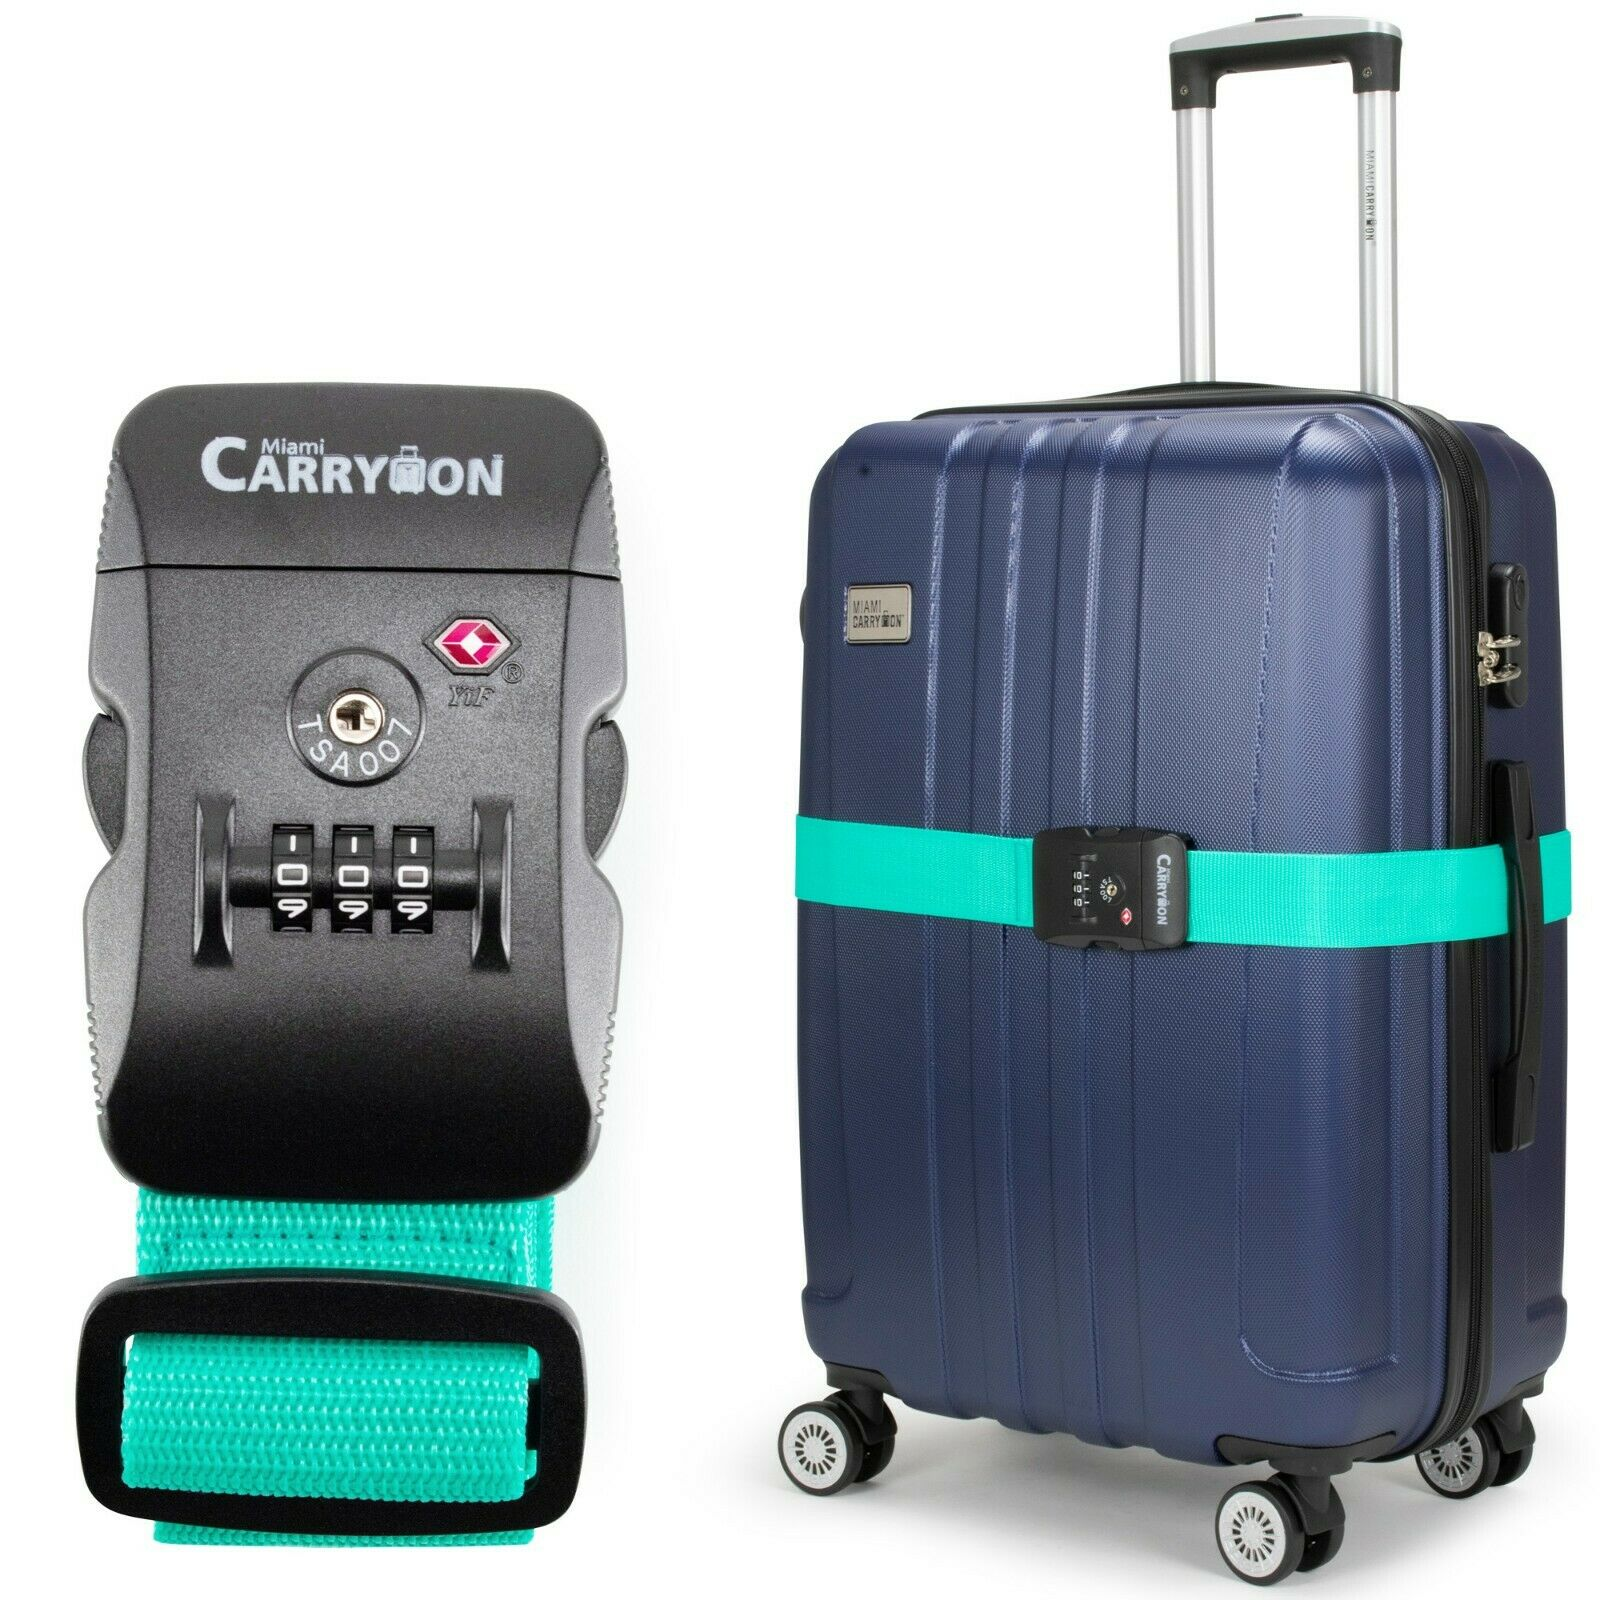 Miami CarryOn Adjustable Luggage Strap with a Built-in TSA Combination Lock Teal